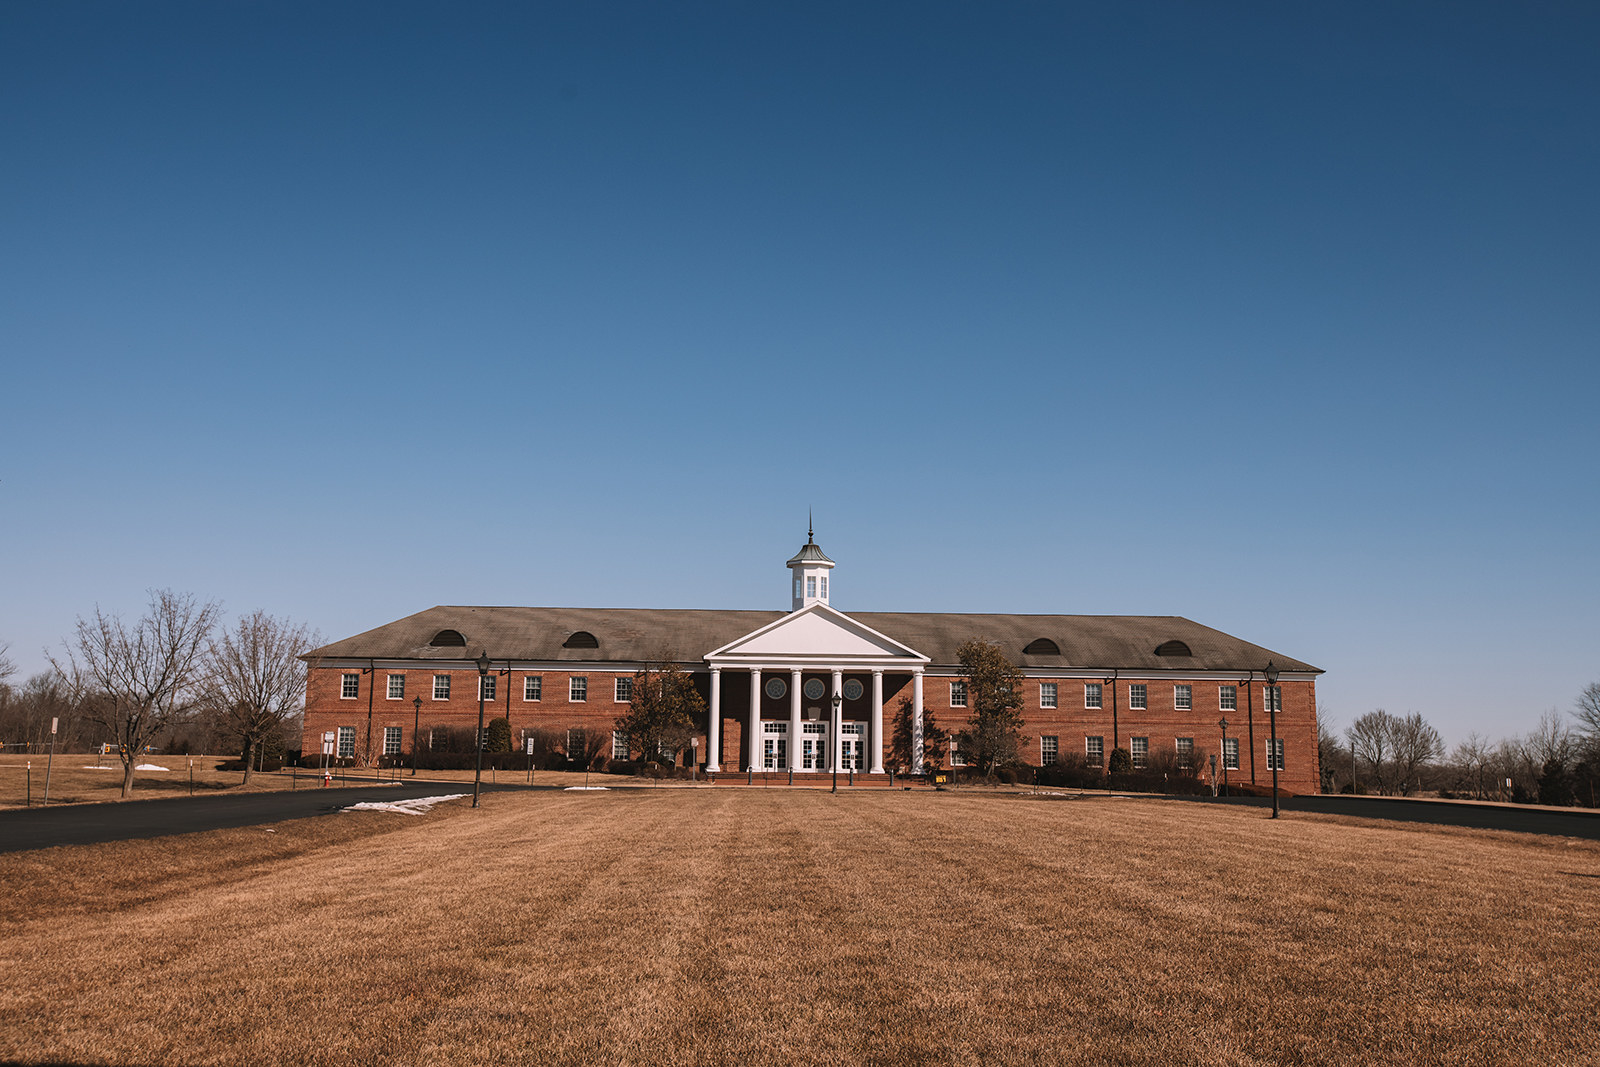 A large brick building with columns stands in the distance at the end of a grassy field